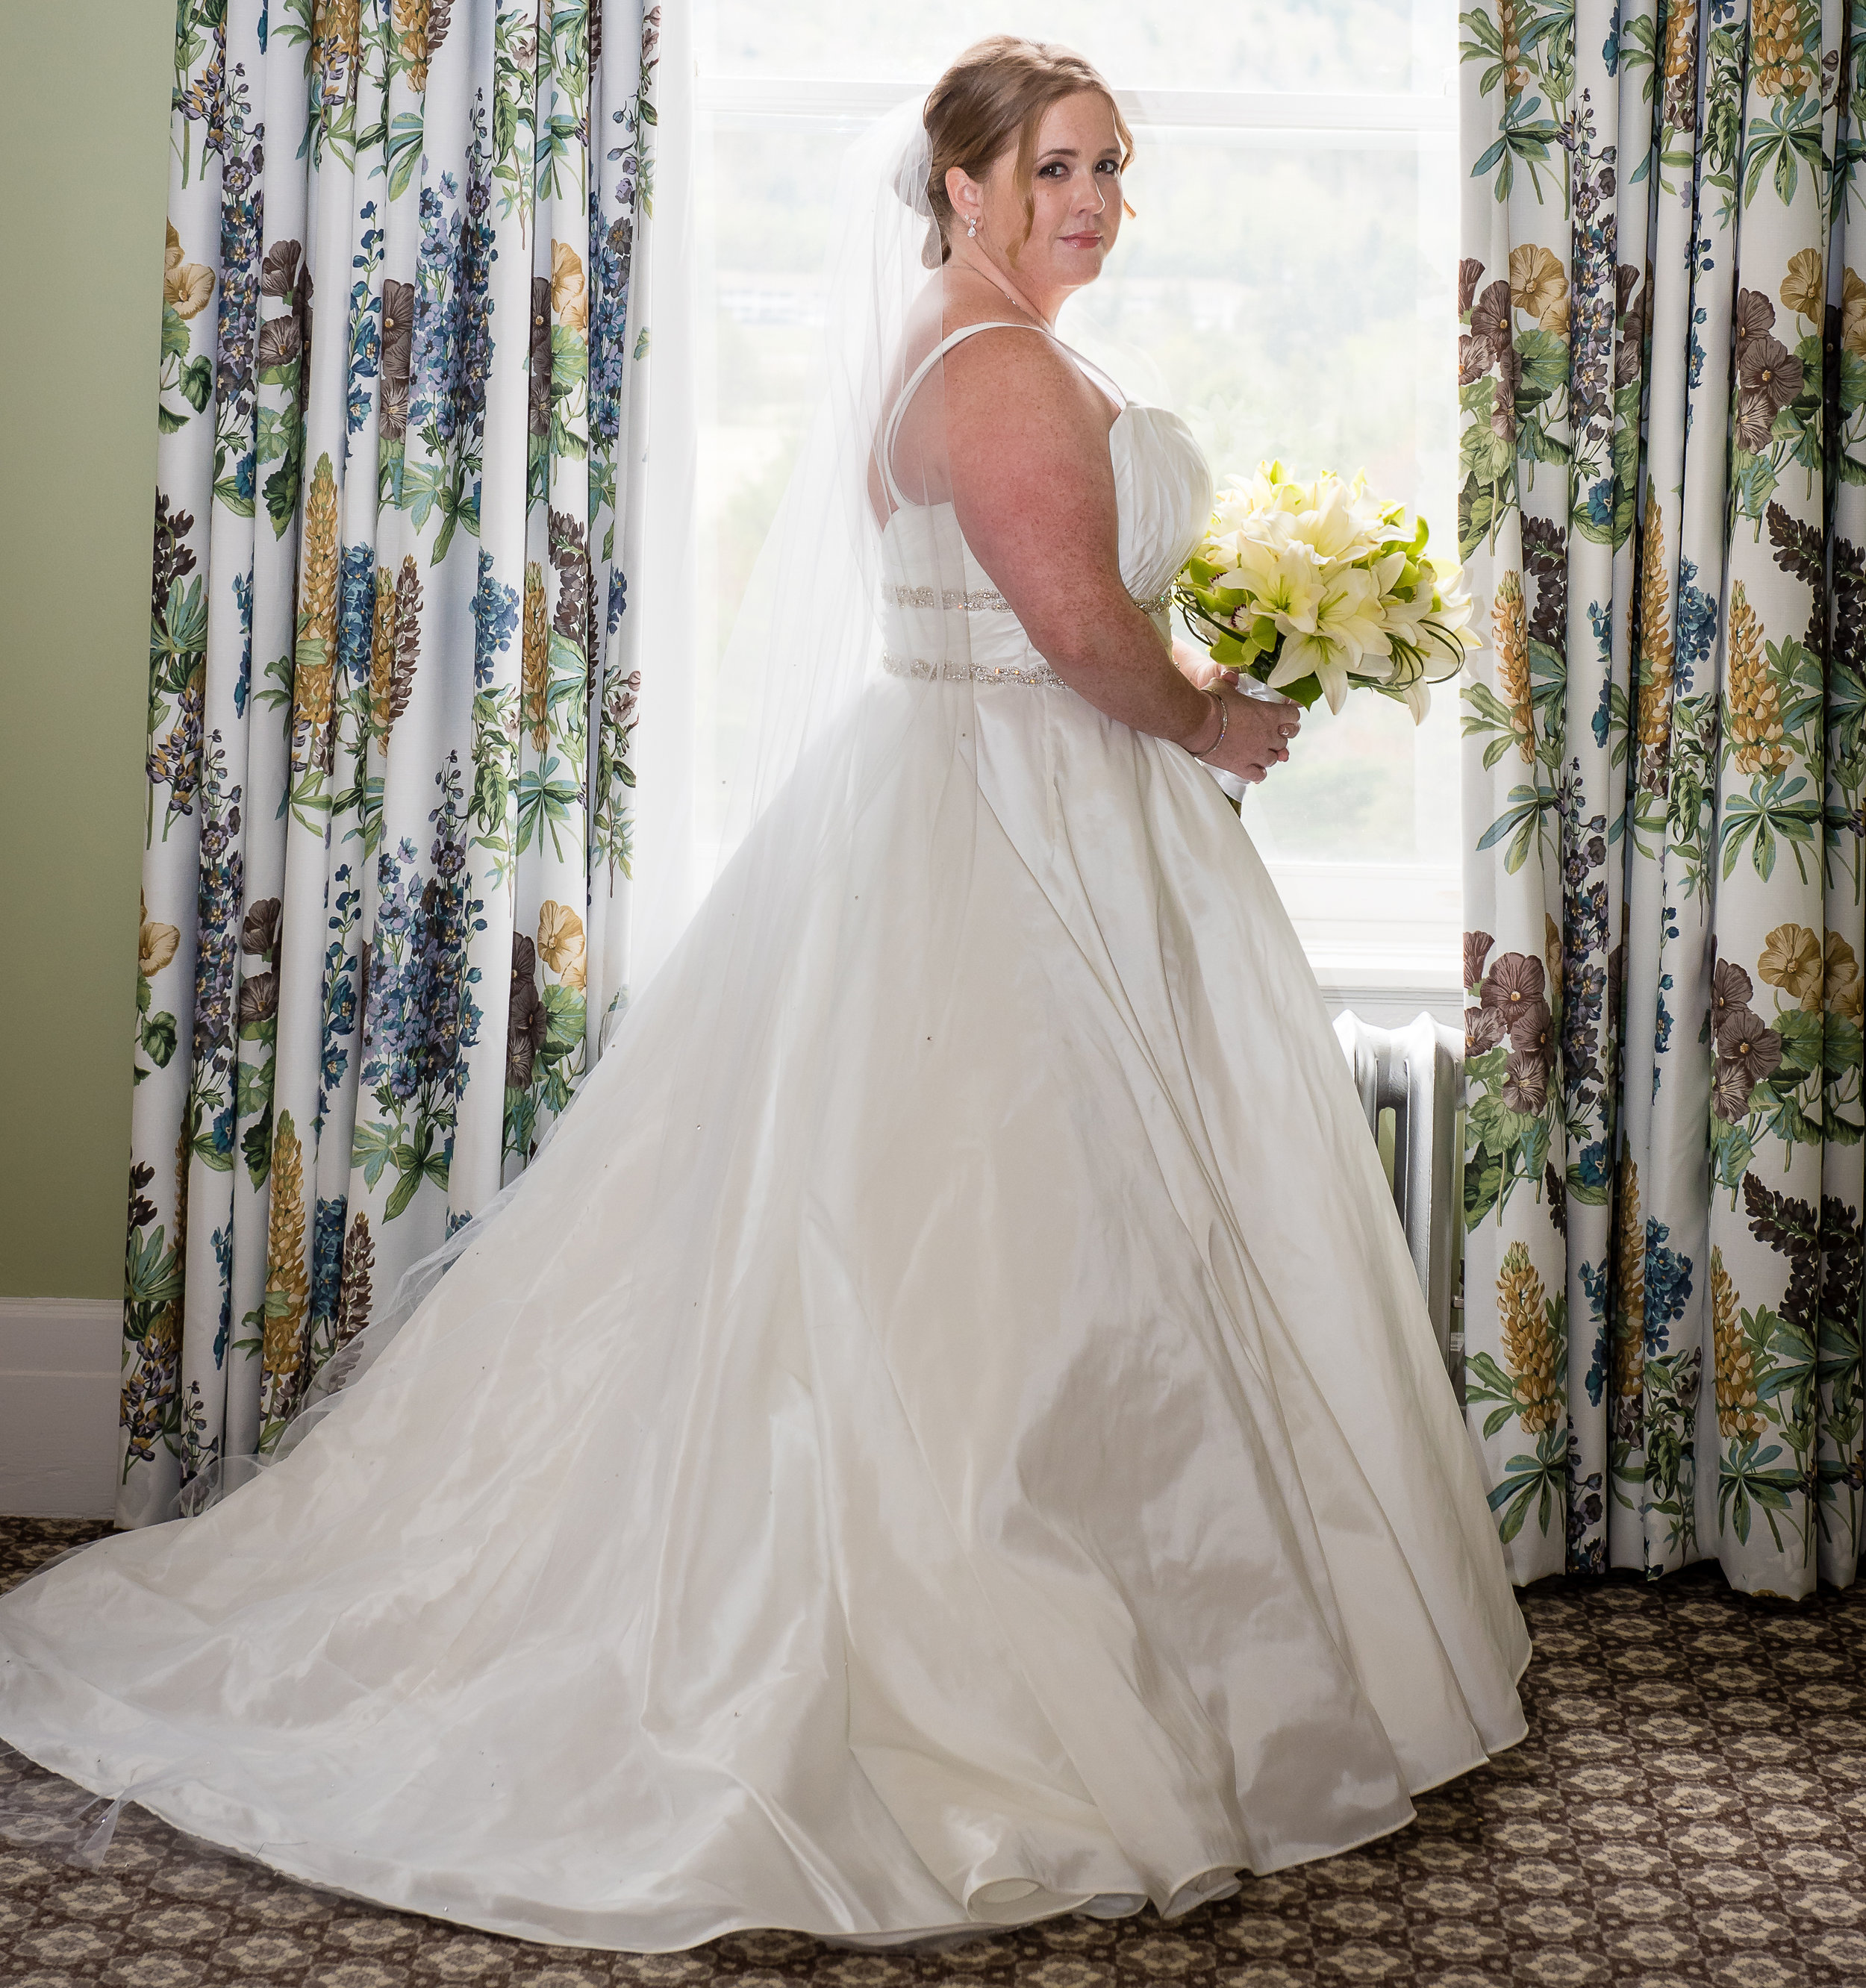 satin wedding gown with full circle skirt